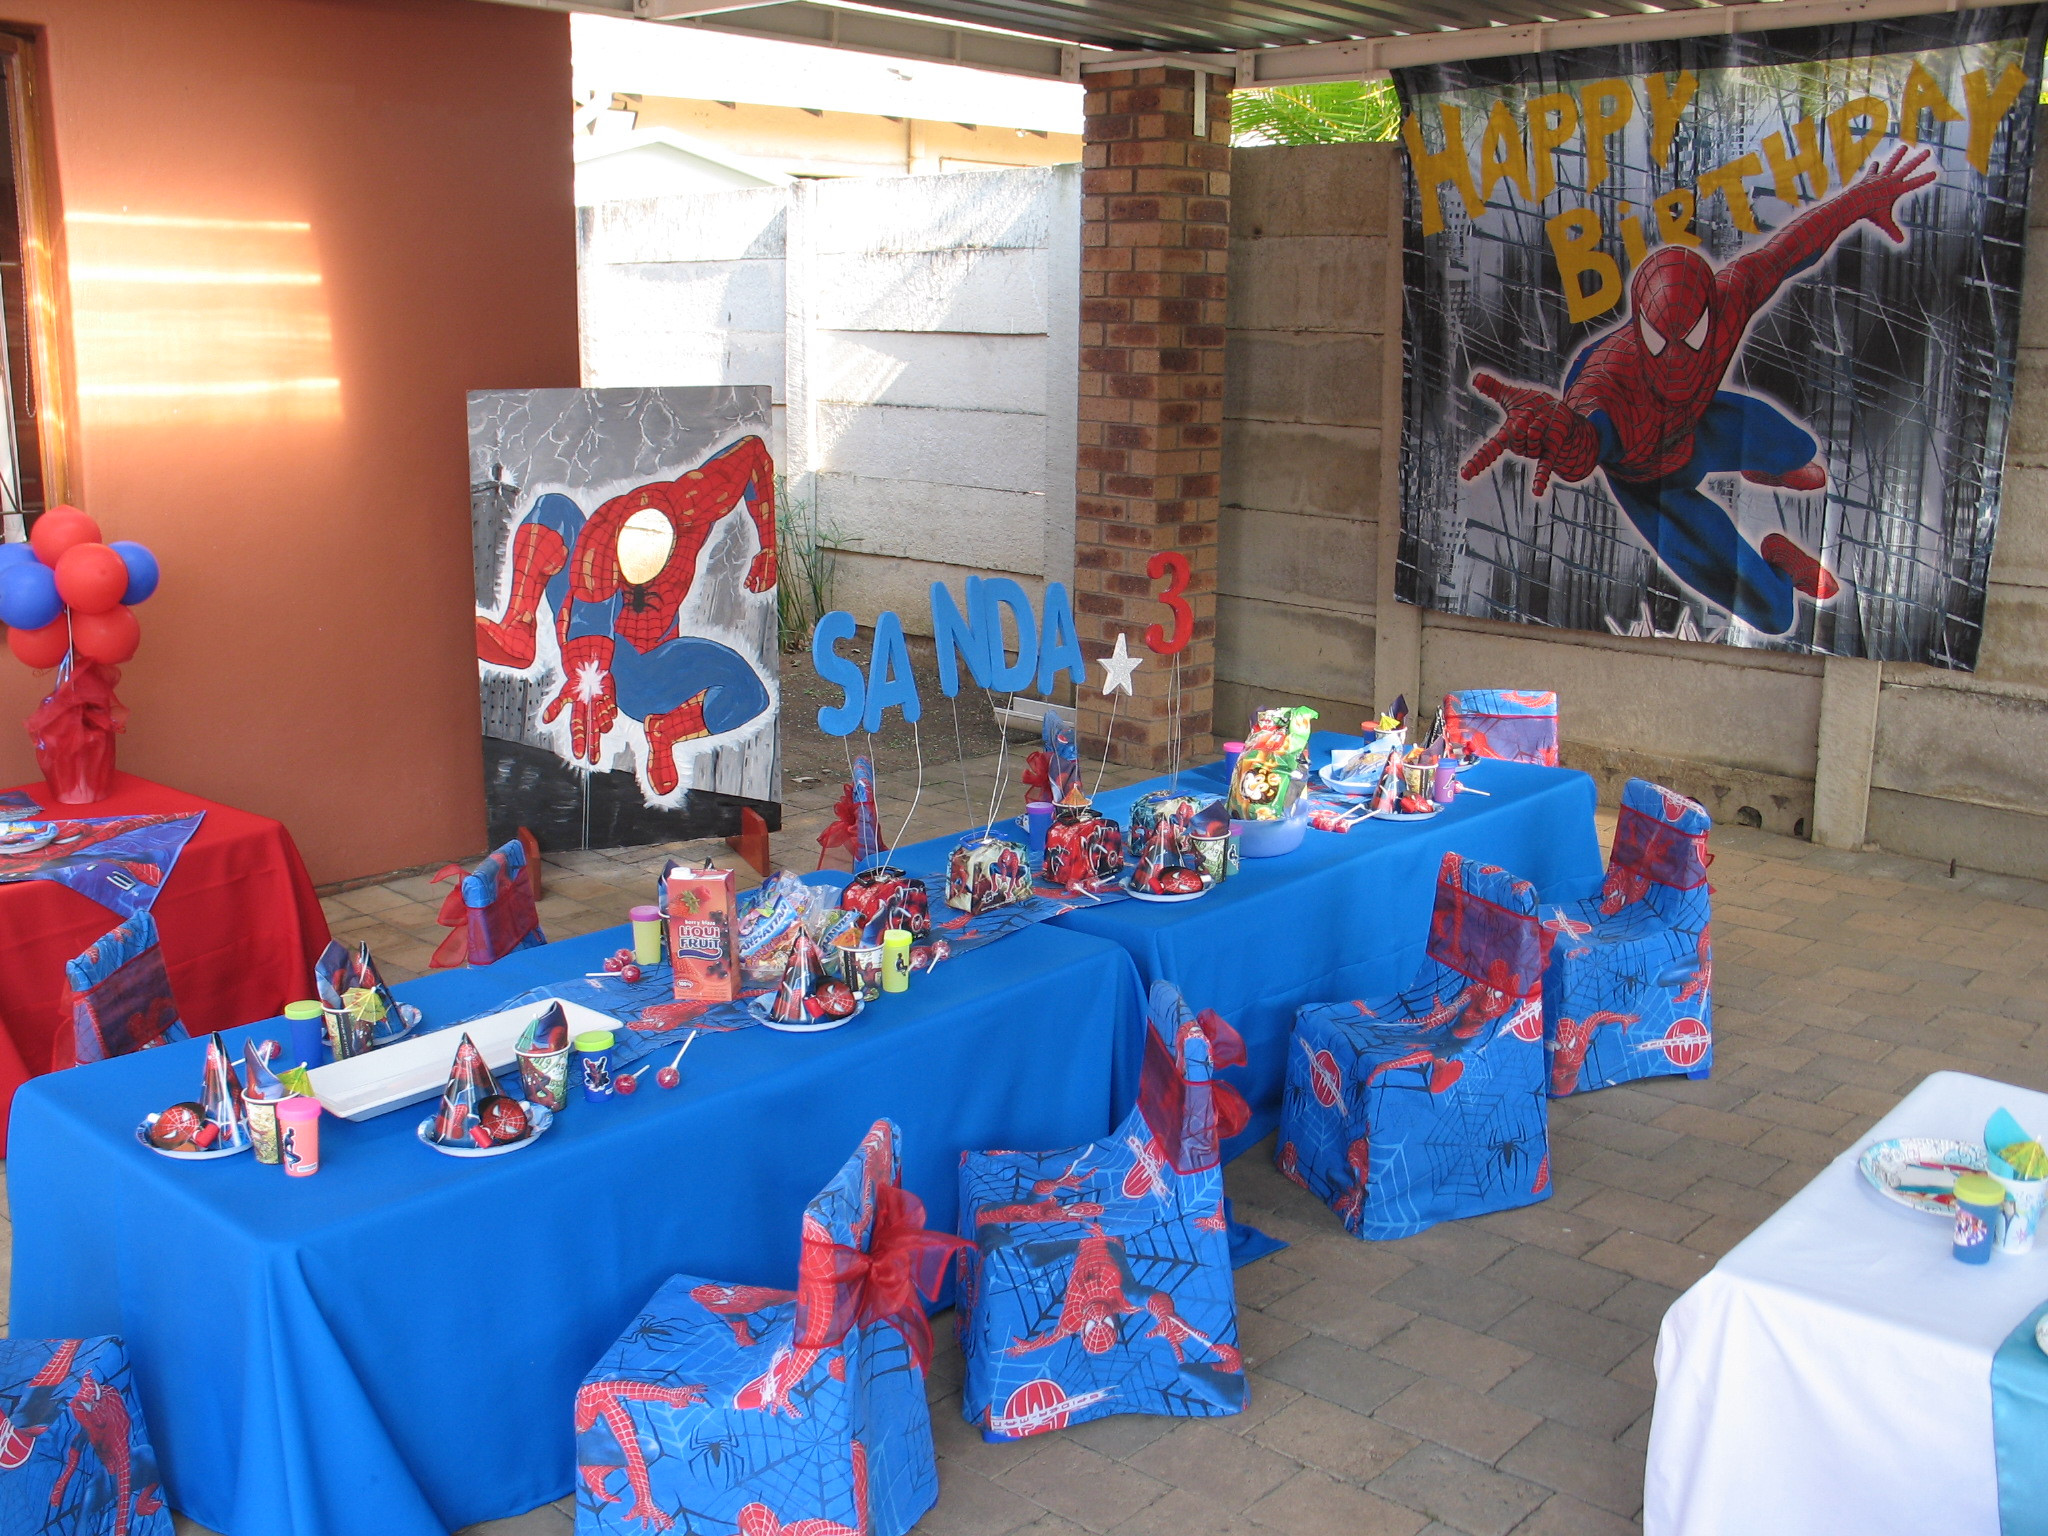 Best ideas about Spiderman Birthday Party . Save or Pin DFW Party Rental 2013 Now.